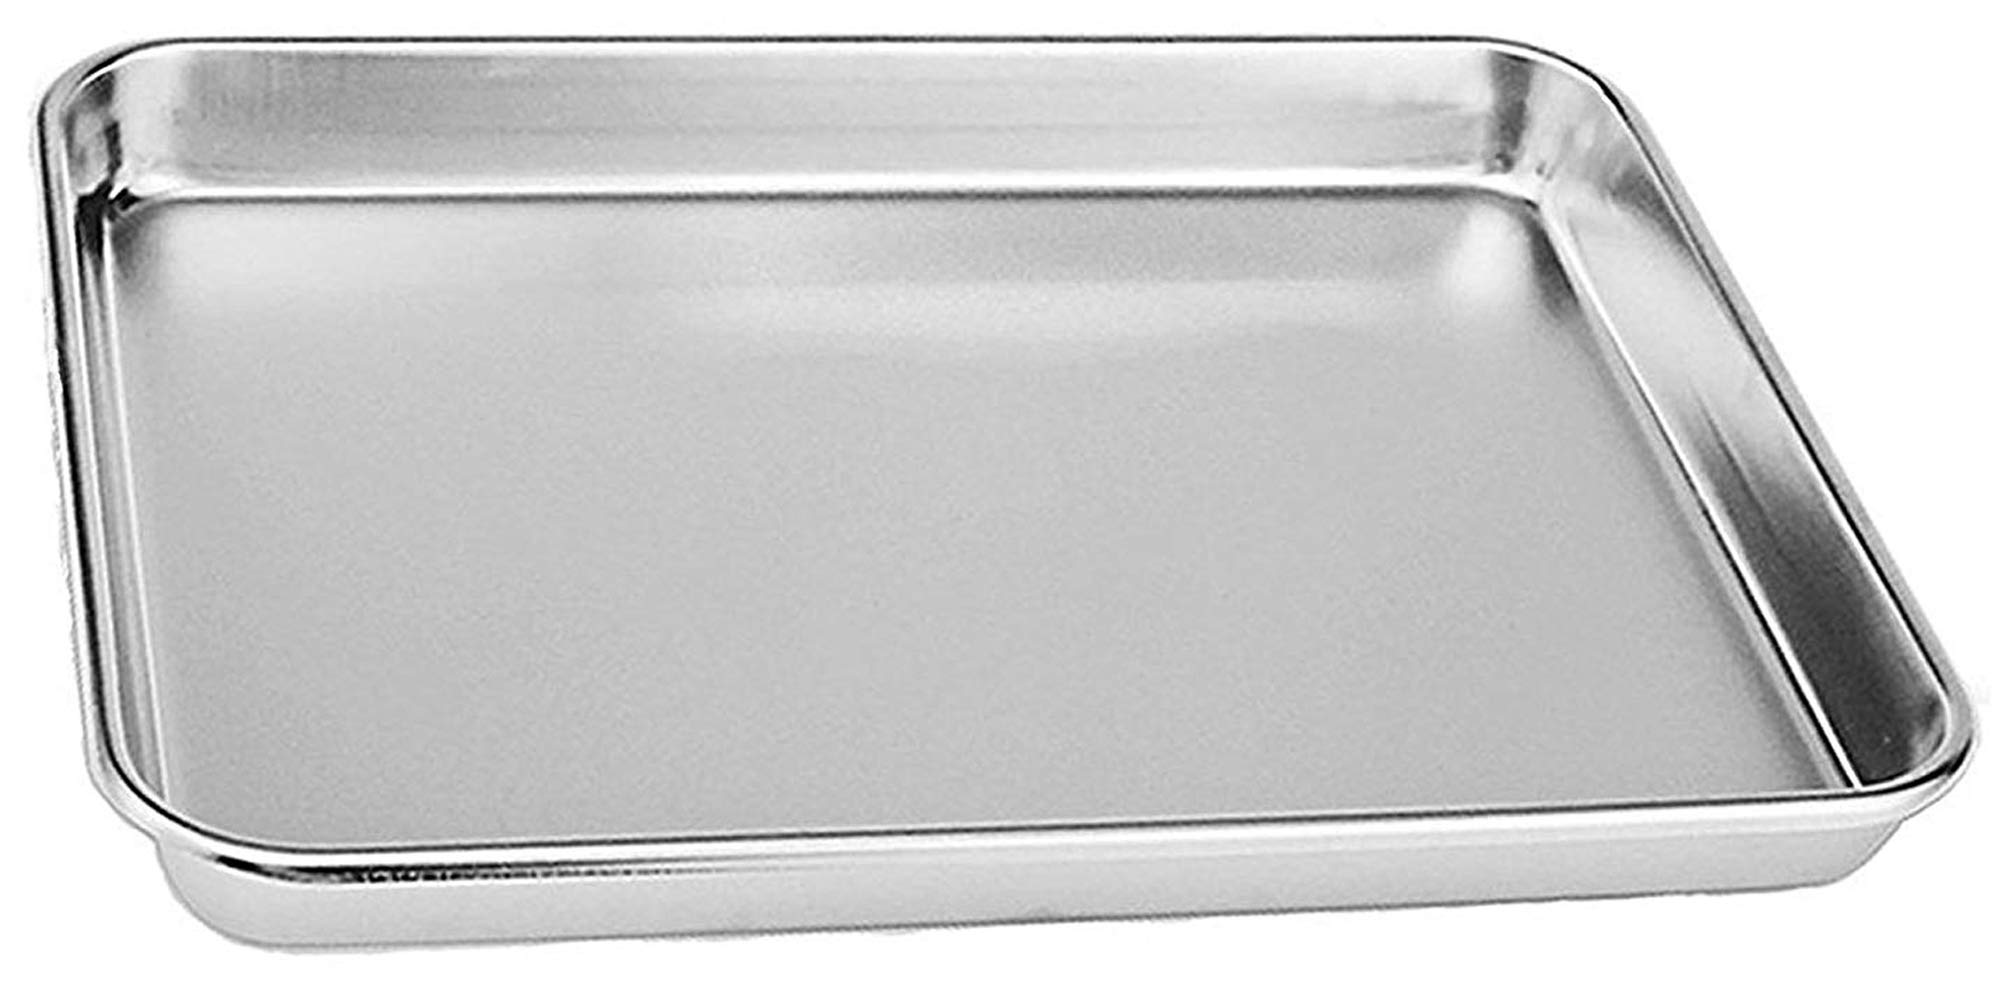 Rykey Stainless Steel Toaster Oven Pan Tray Ovenware, Big Size 12'' x 10'' x 1'', Rust Resistant & Healthy, Mirror Finish & Deep Edge, Easy Clean & Dishwasher Safe